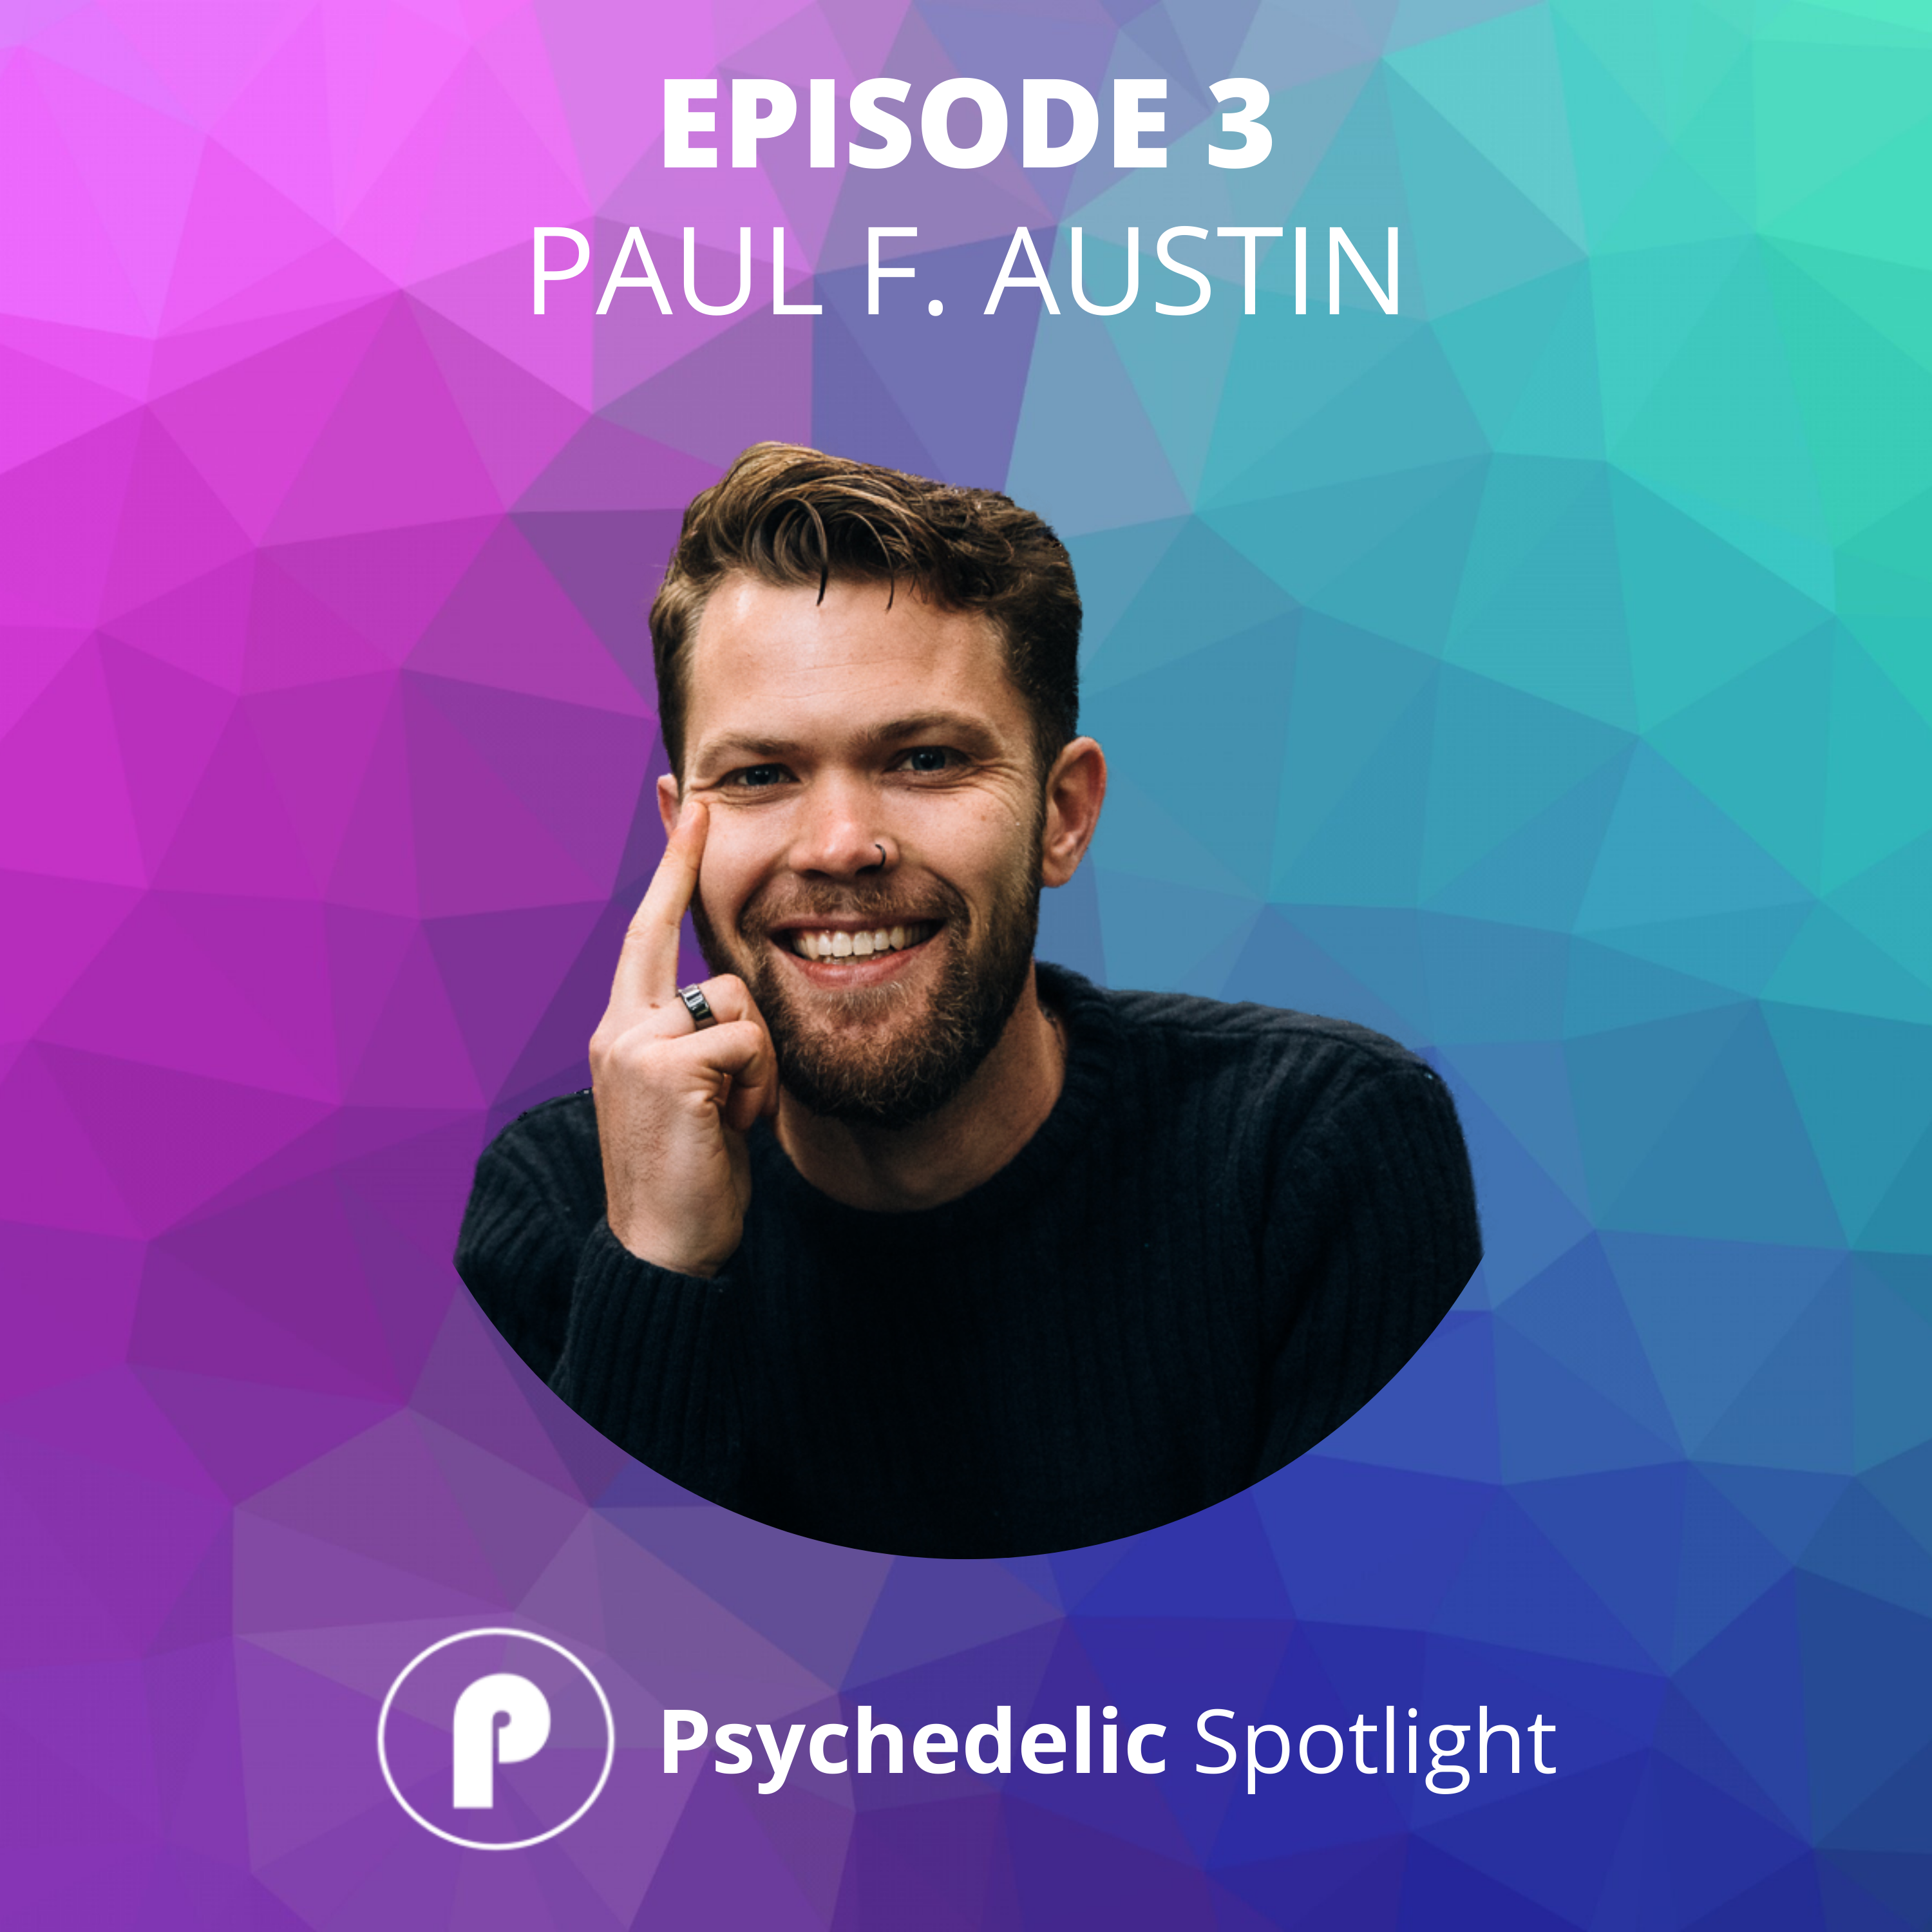 Interview with Paul F. Austin